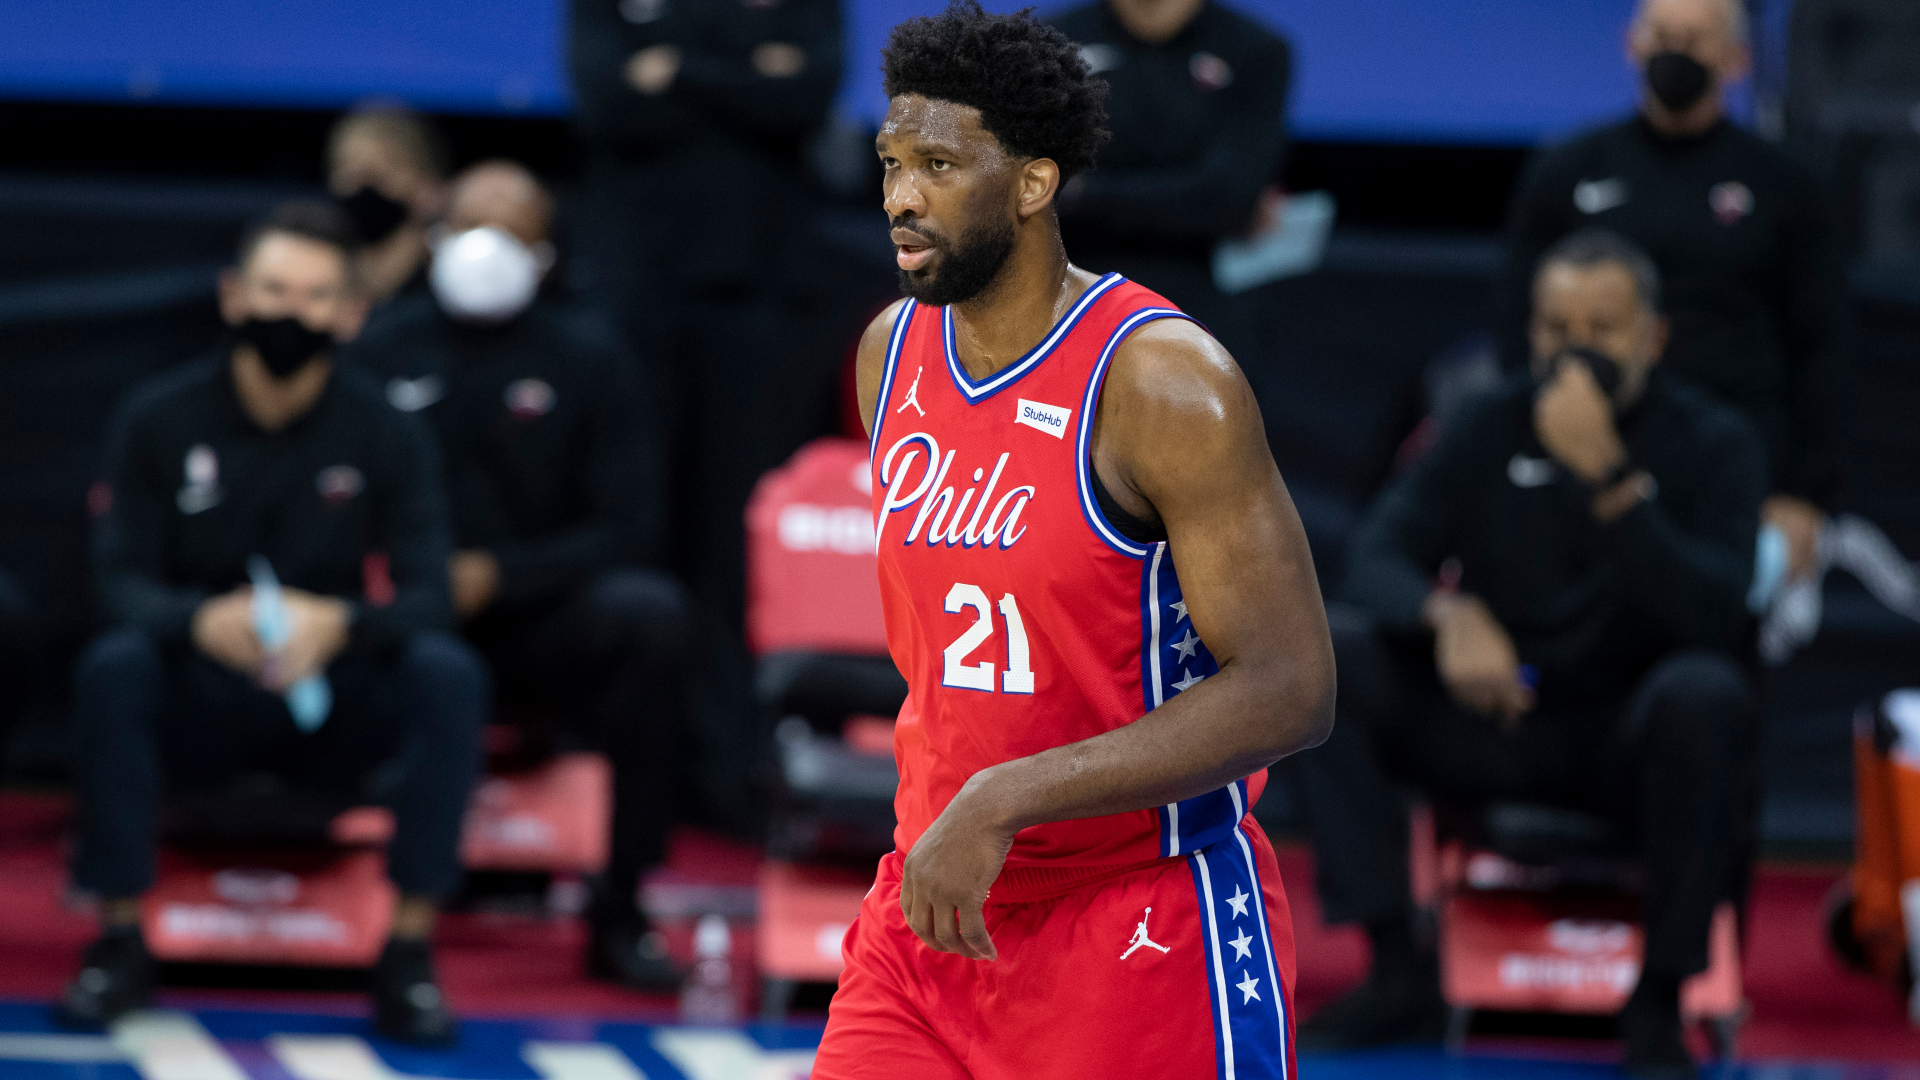 After sitting out due to knee soreness, Joel Embiid is set to return against the Boston Celtics midweek.